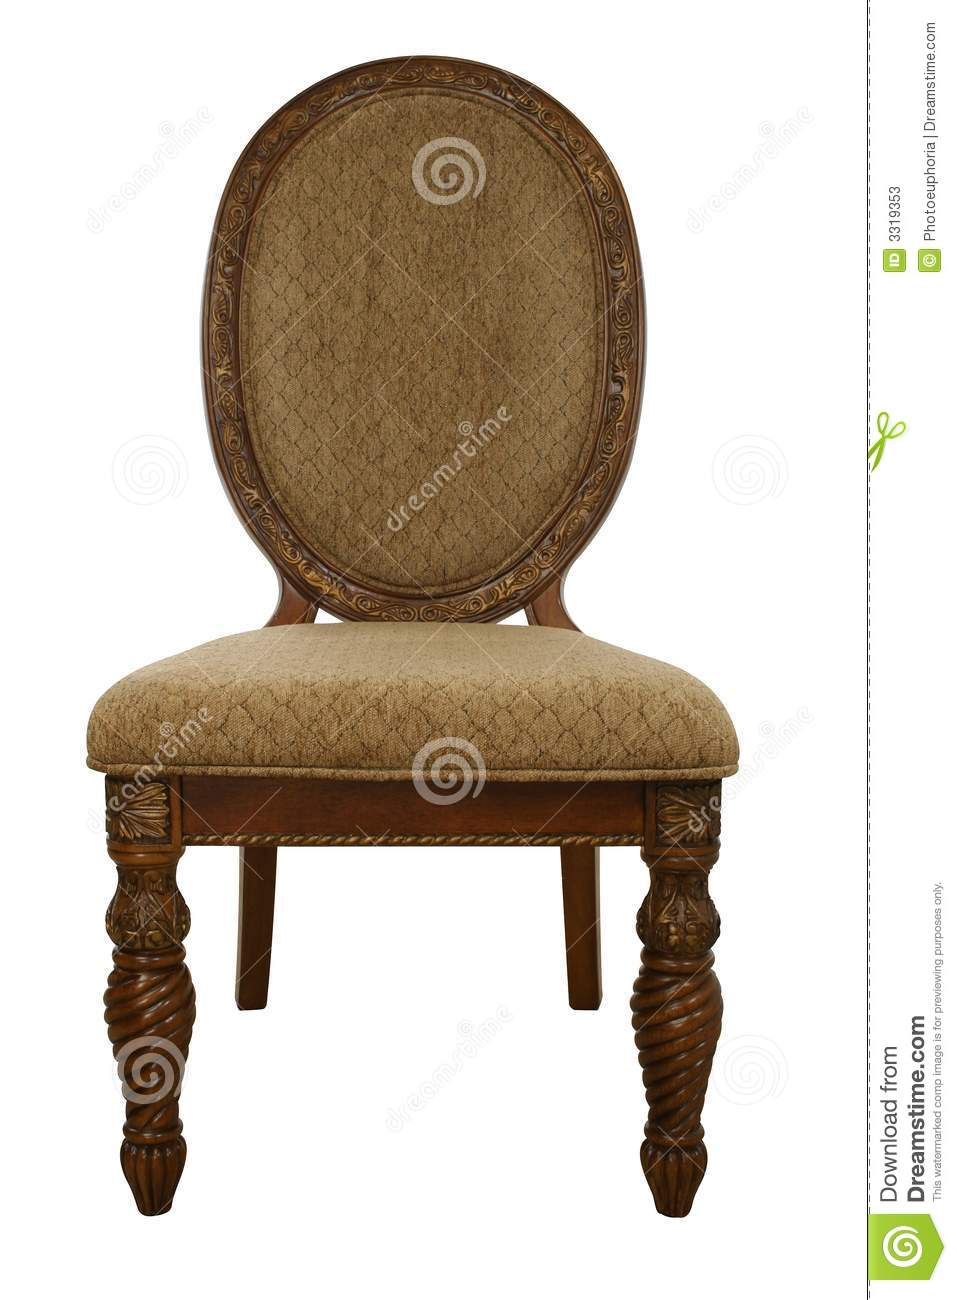 Fancy Chair stock image Image of wooden dinning